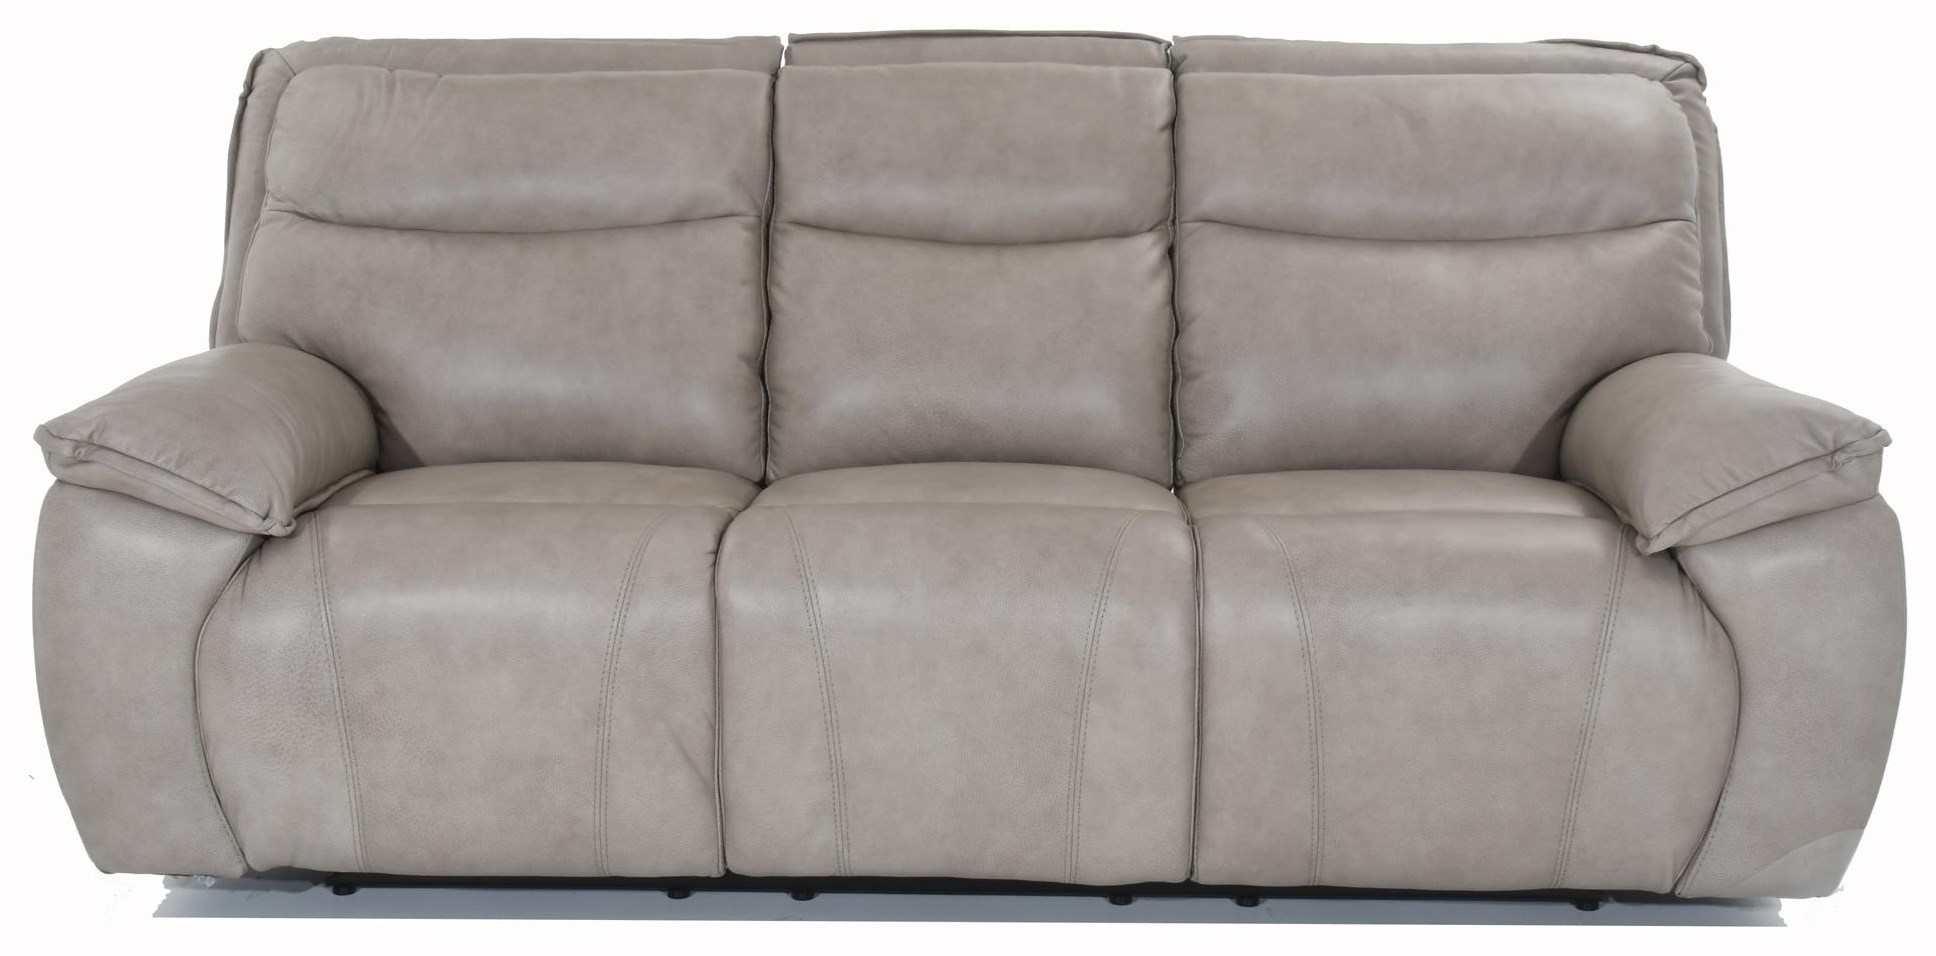 E1578 Power Headrest Reclining Sofa by Futura Leather at Baer's Furniture